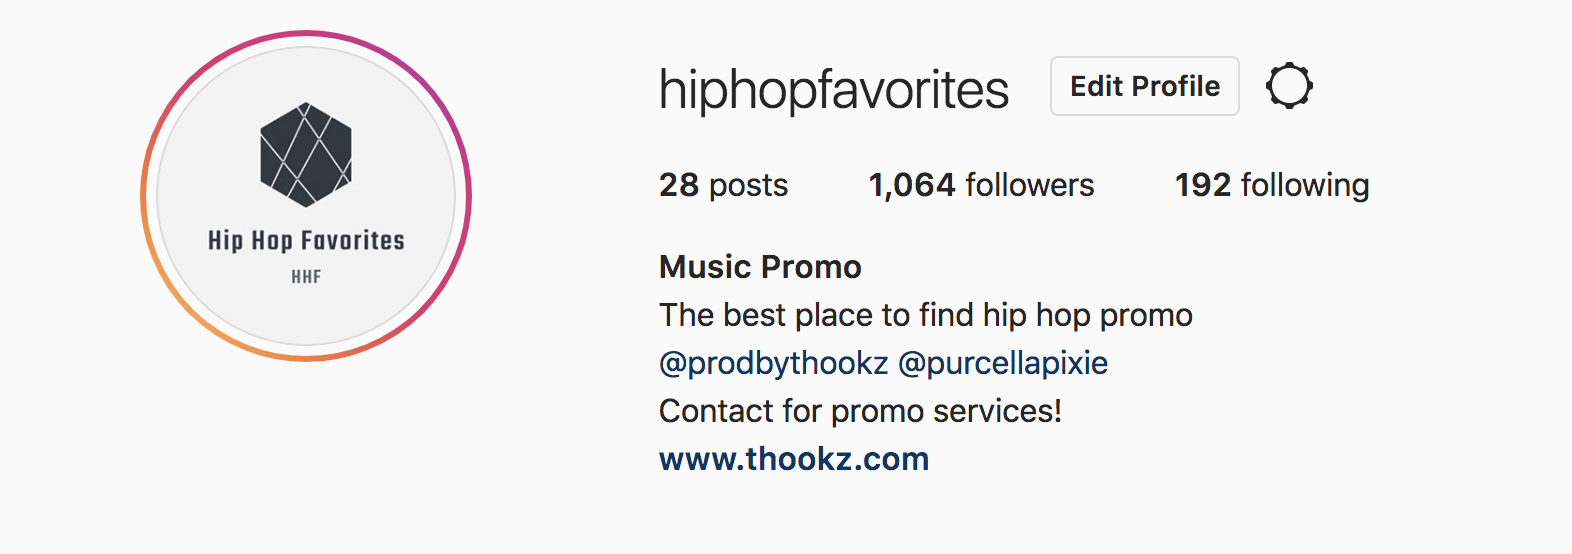 Be sure to follow Hip Hop Favorites on IG for more promo content